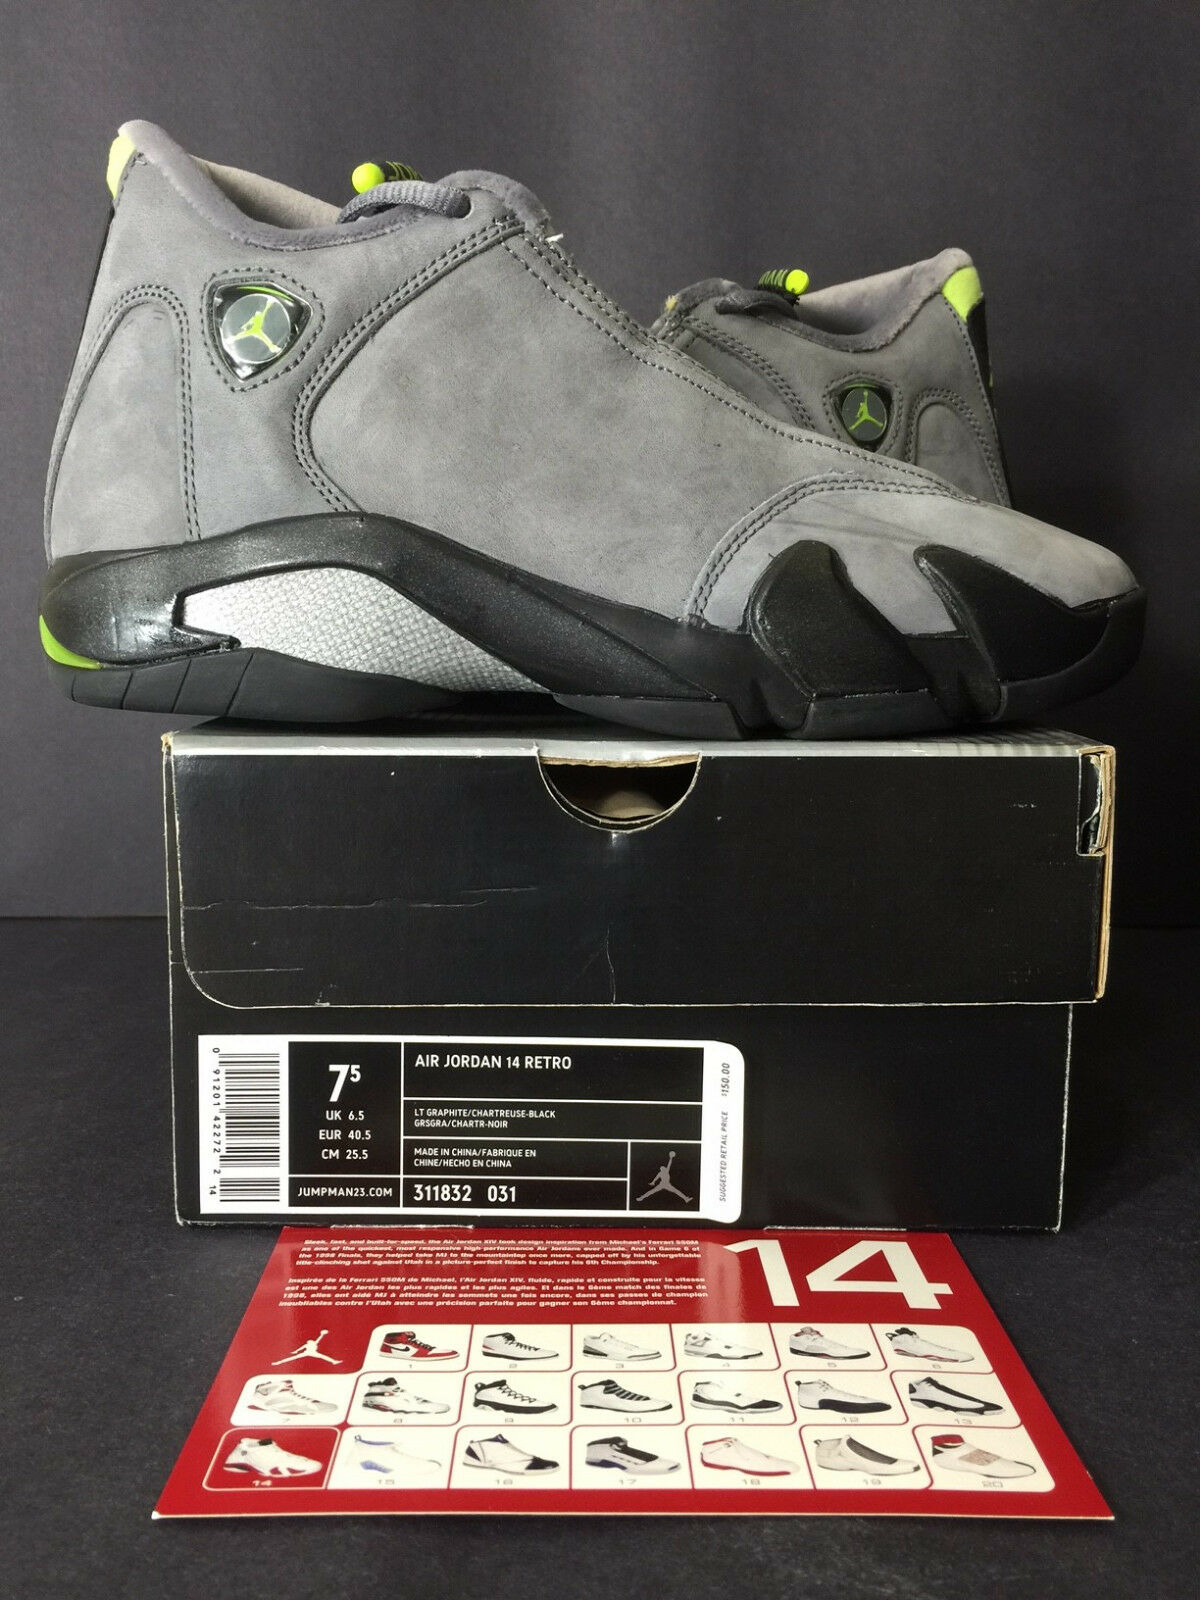 the best attitude 7e906 d2a30 2005 DS NEW NIKE AIR JORDAN XIV 14 RETRO GRAPHITE GRAPHITE GRAPHITE  CHARTREUSE MEN 7.5 WOMEN